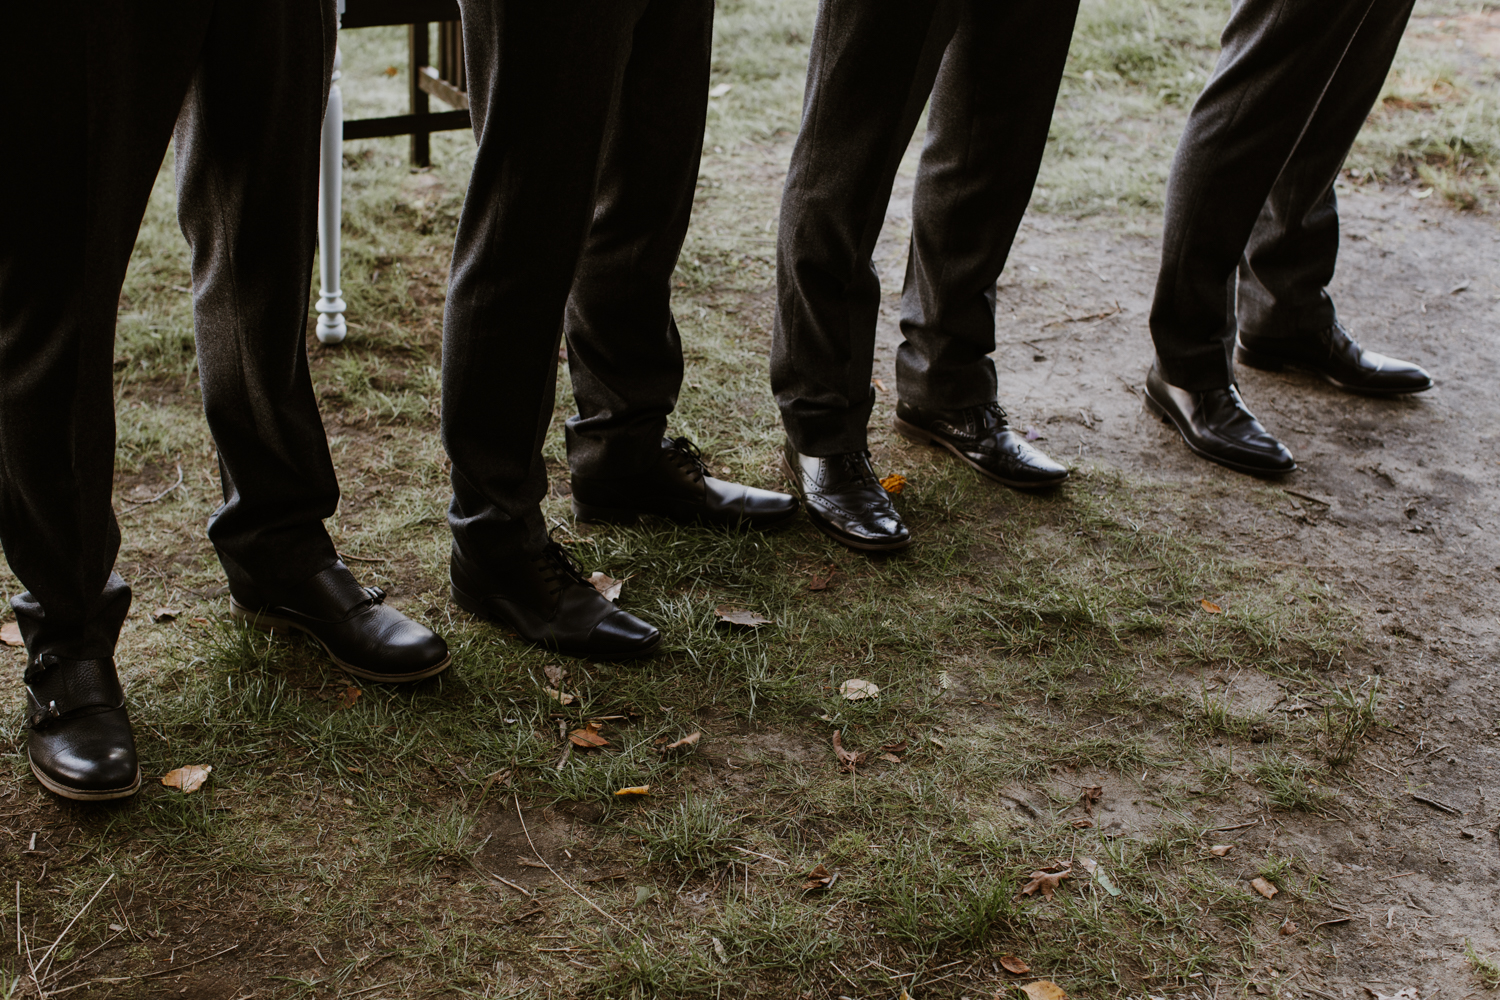 Groomsmean shoes